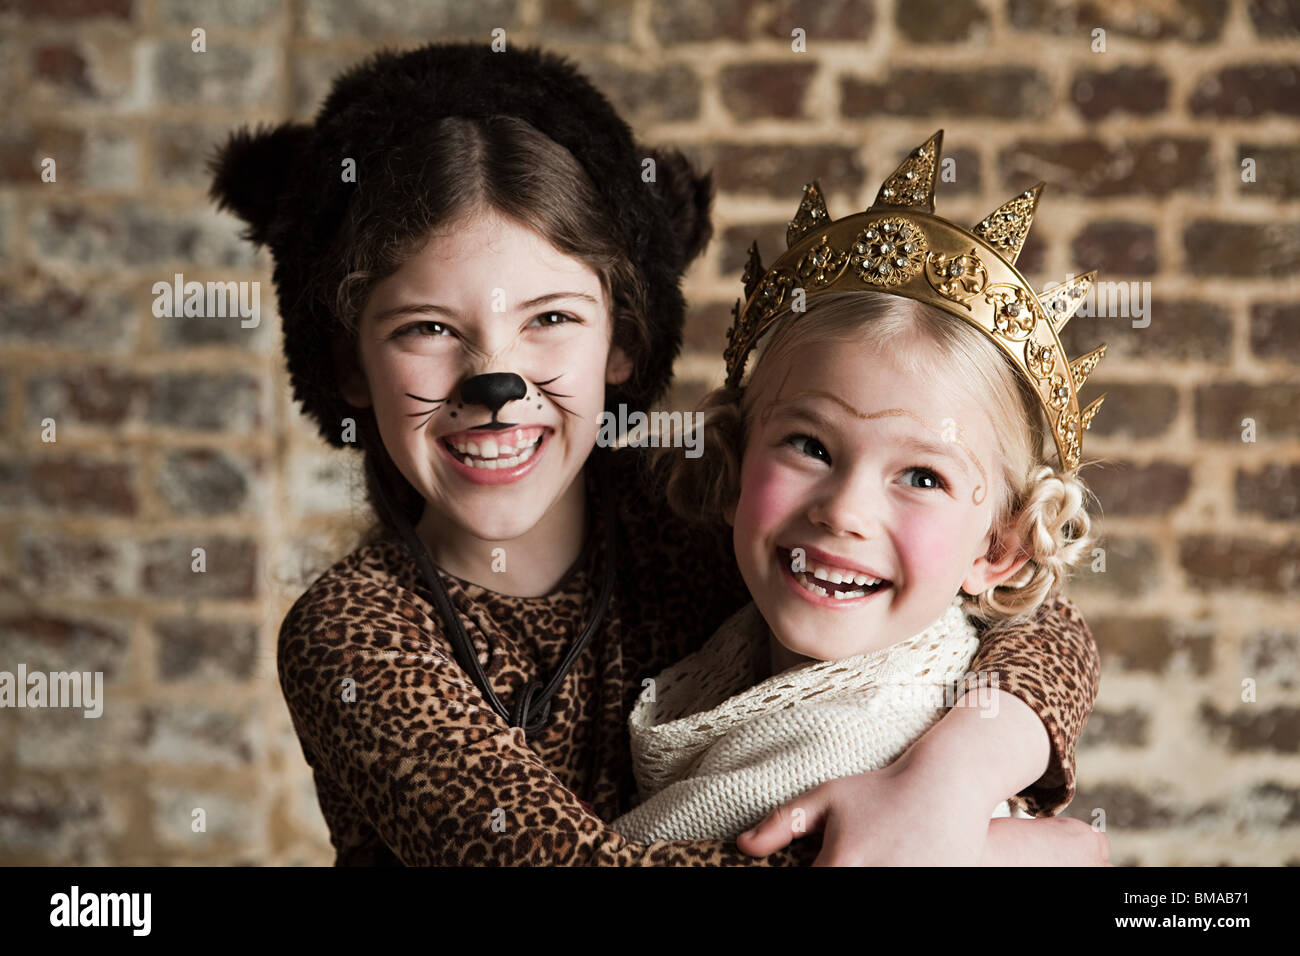 Young girls dressed up as cat and queen Stock Photo